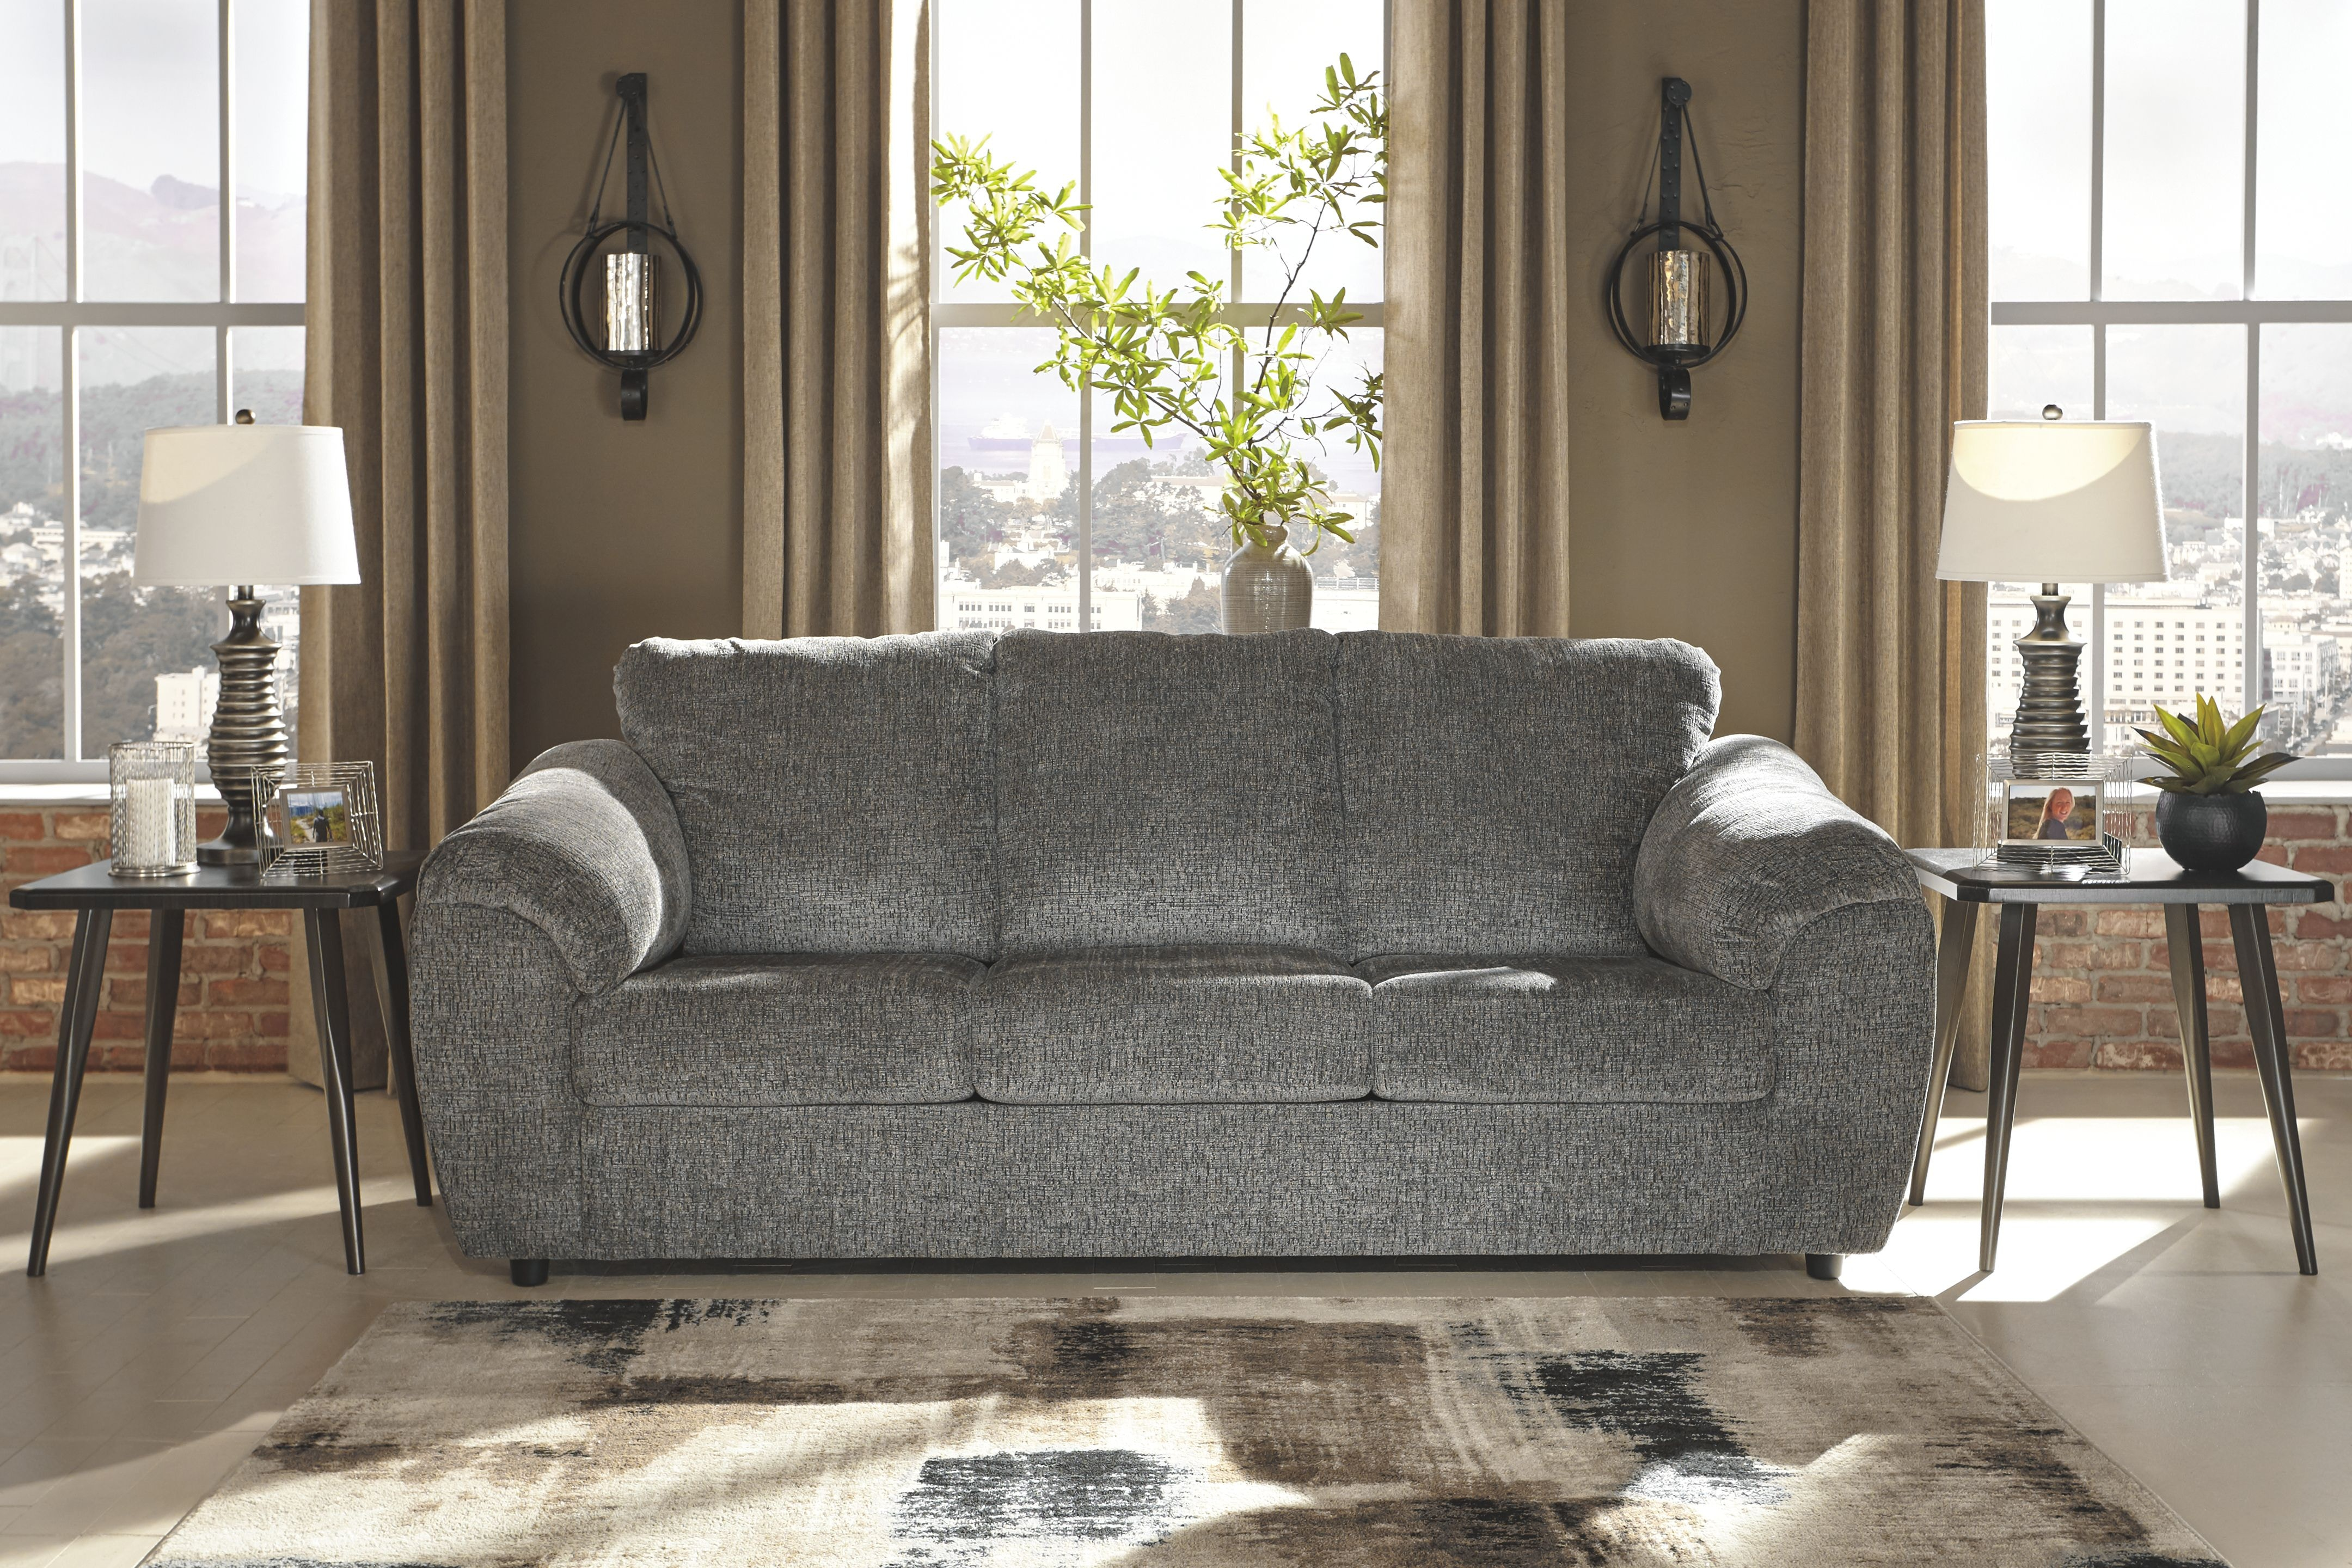 Ordinaire Signature Design By Ashley Living Room Sofa 9320238   Factory Direct  Furniture   Cleveland, MS